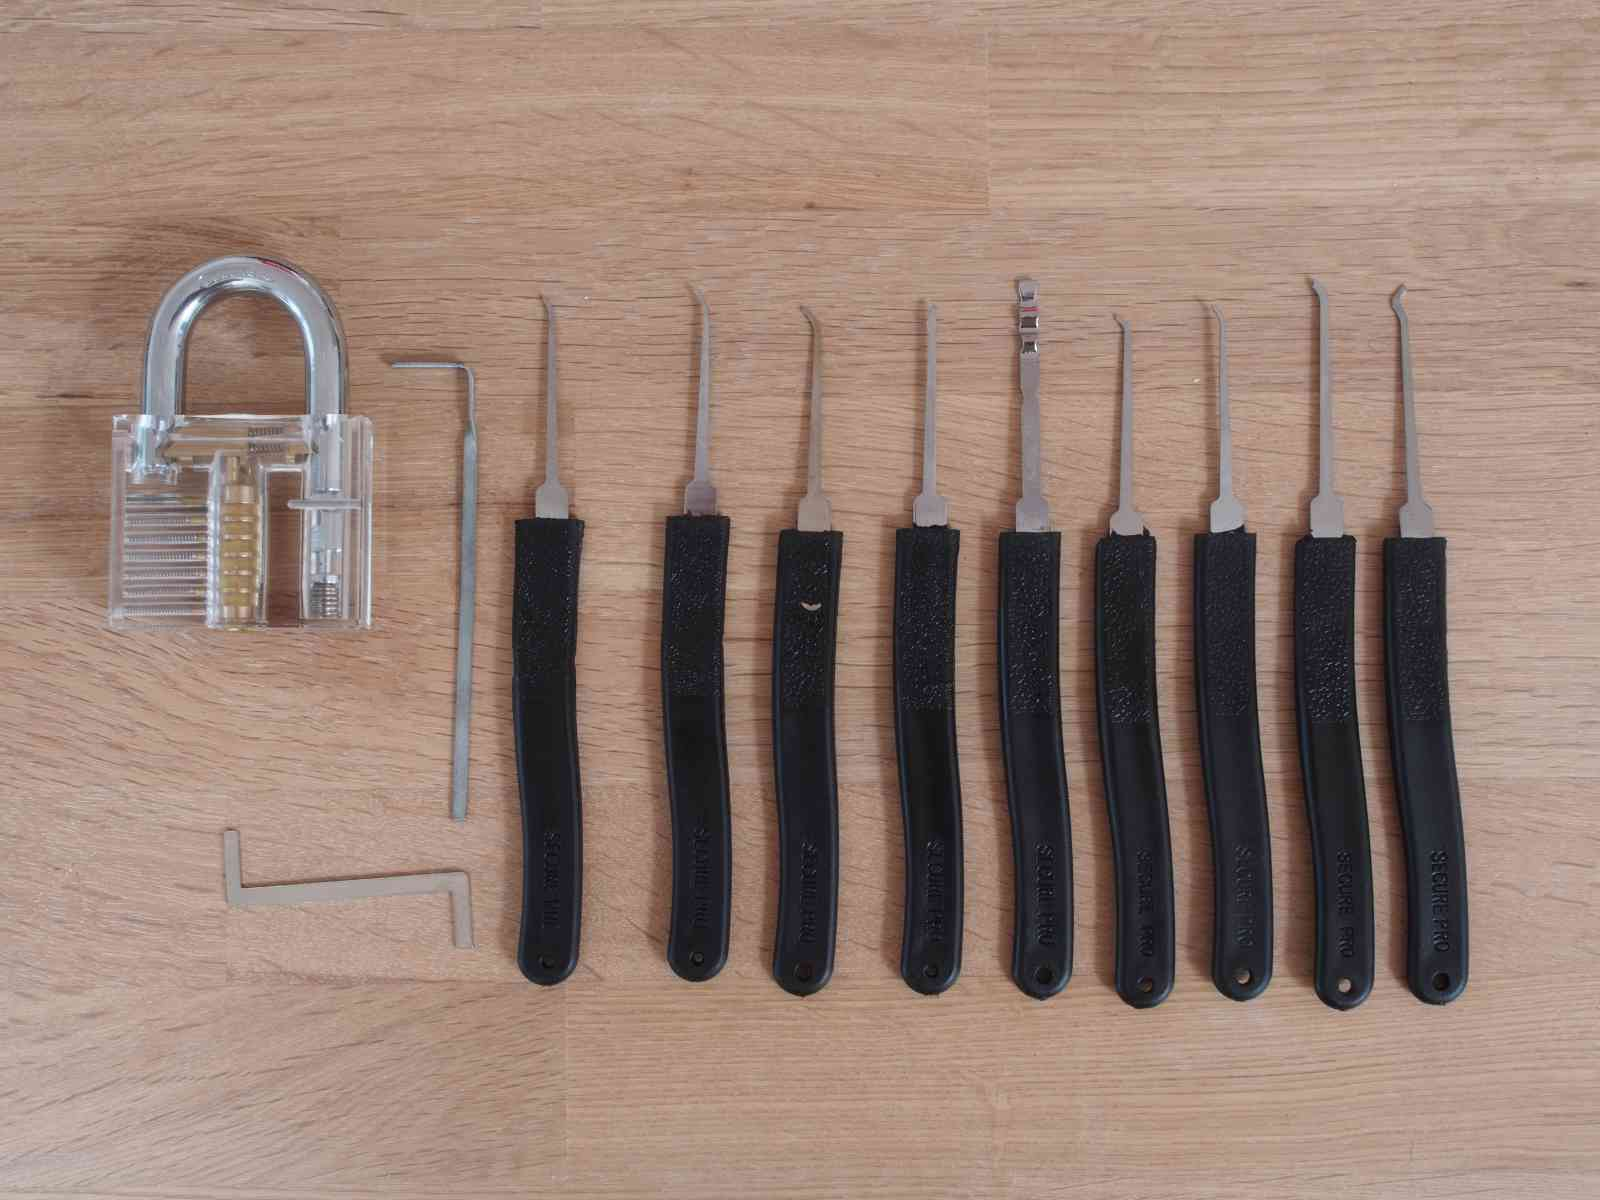 Lockpicking-Set